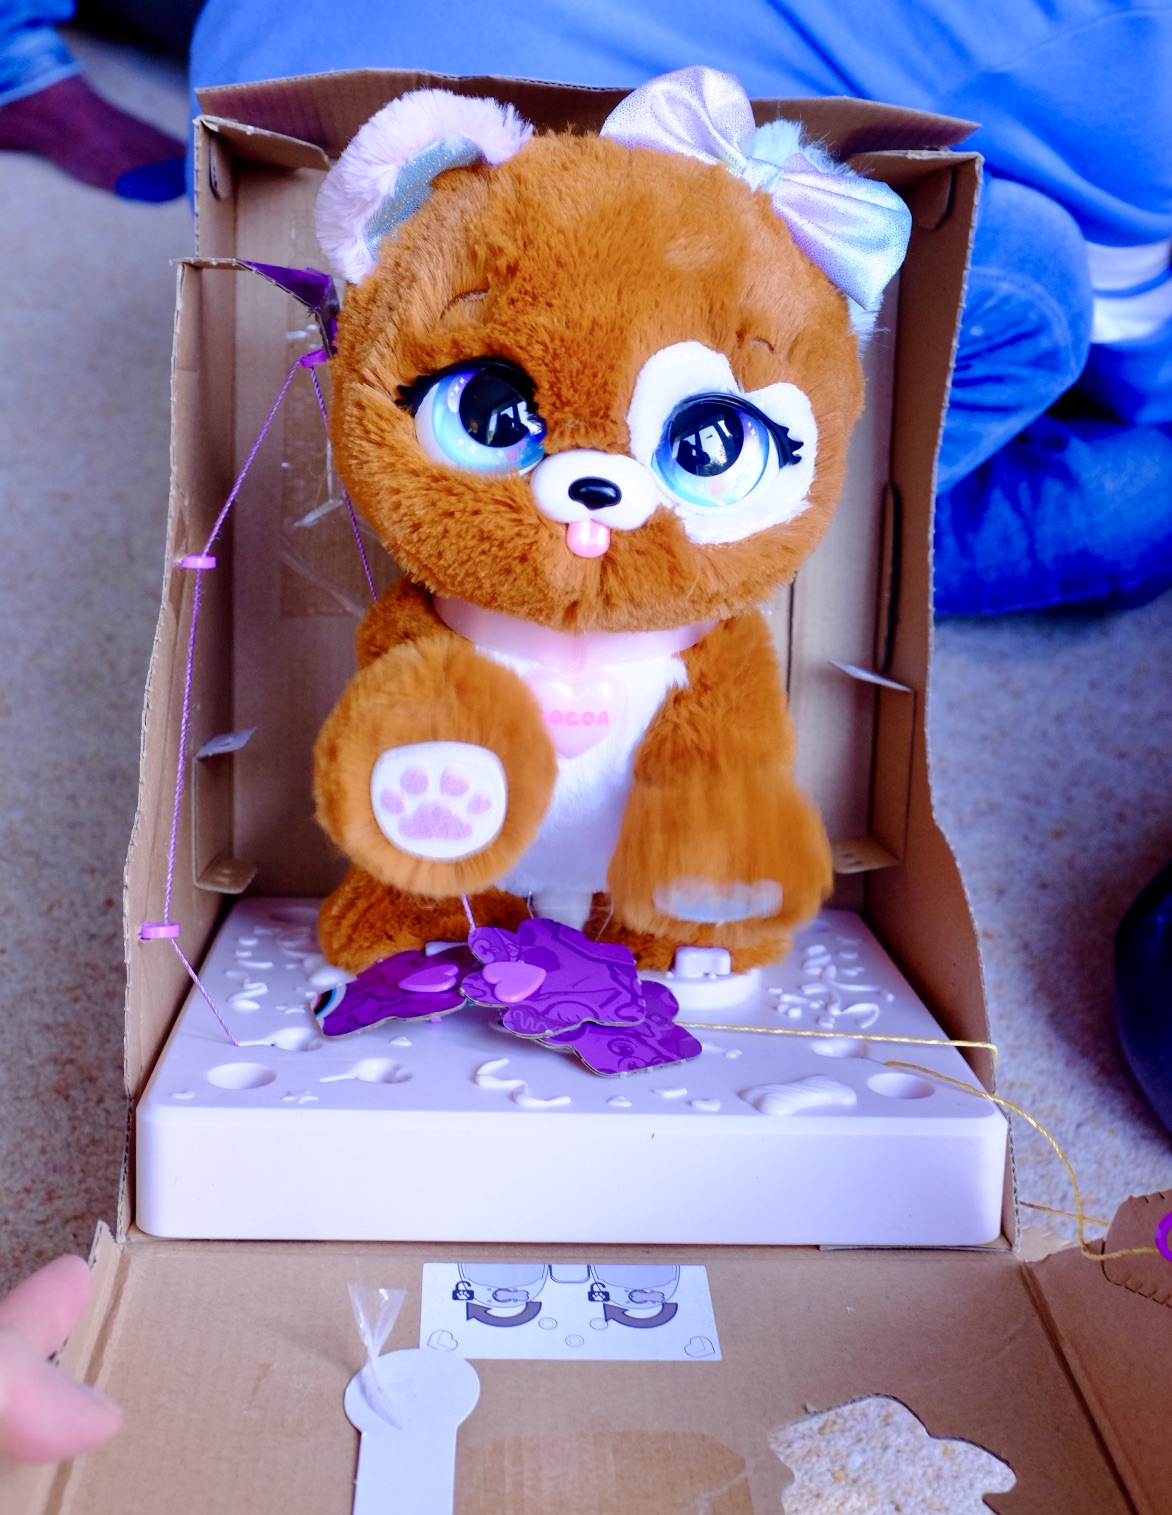 revealing Cocoa, one of the two present pets characters